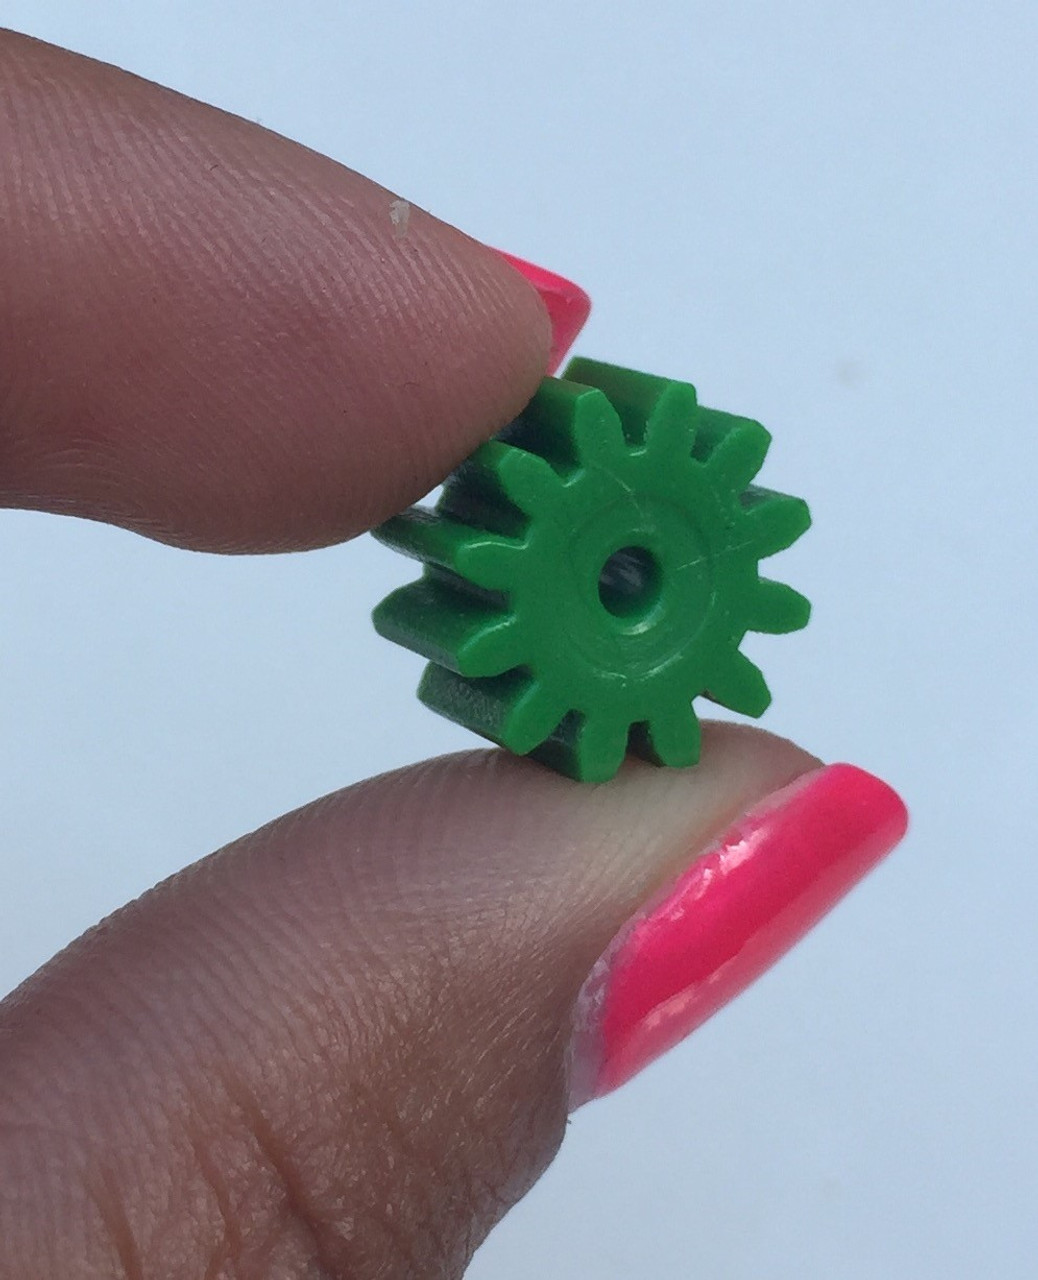 Small Gear, 2.5-mm hole